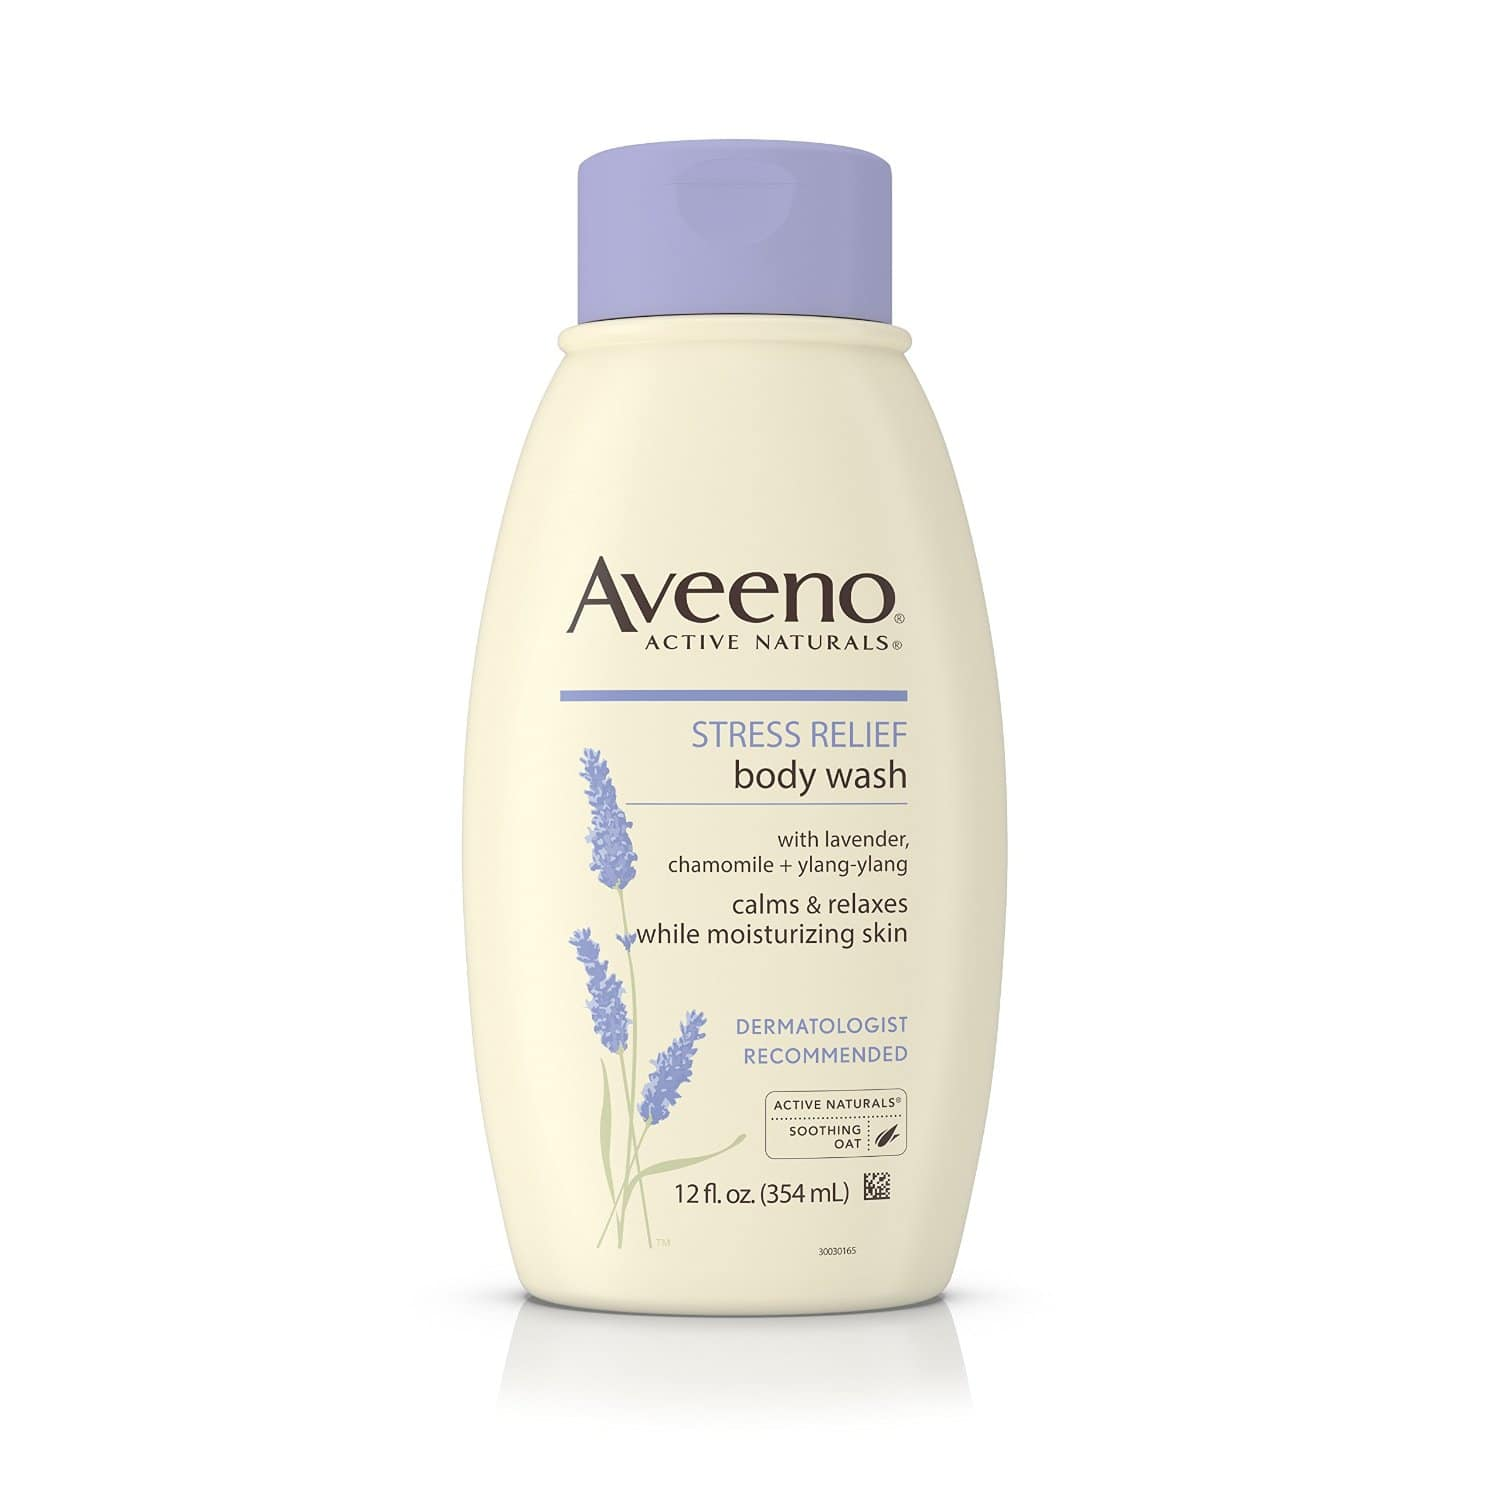 3-Pack 12oz Aveeno Stress Relief Body Wash $5.63 or less + free shipping @ Amazon